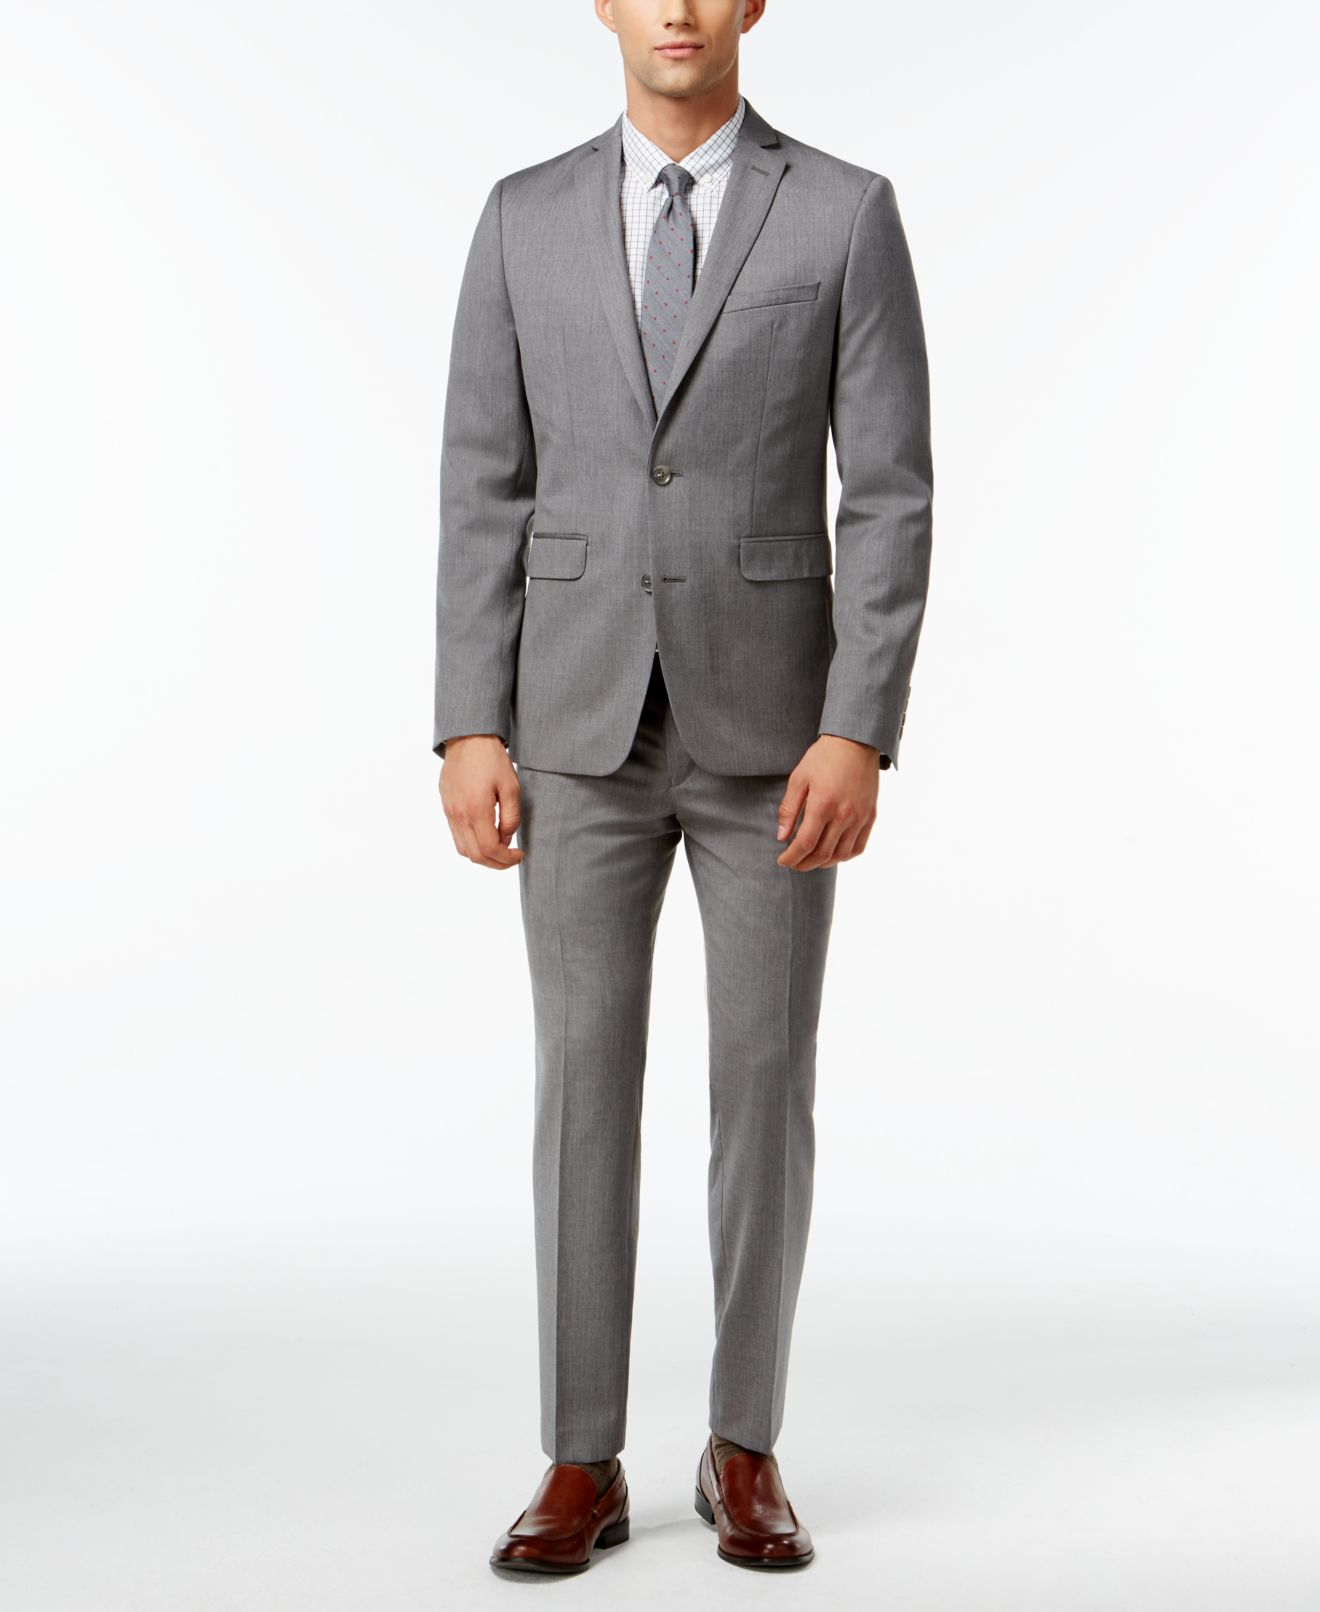 Mens Suits at Macy's - Mens Apparel - Macy's